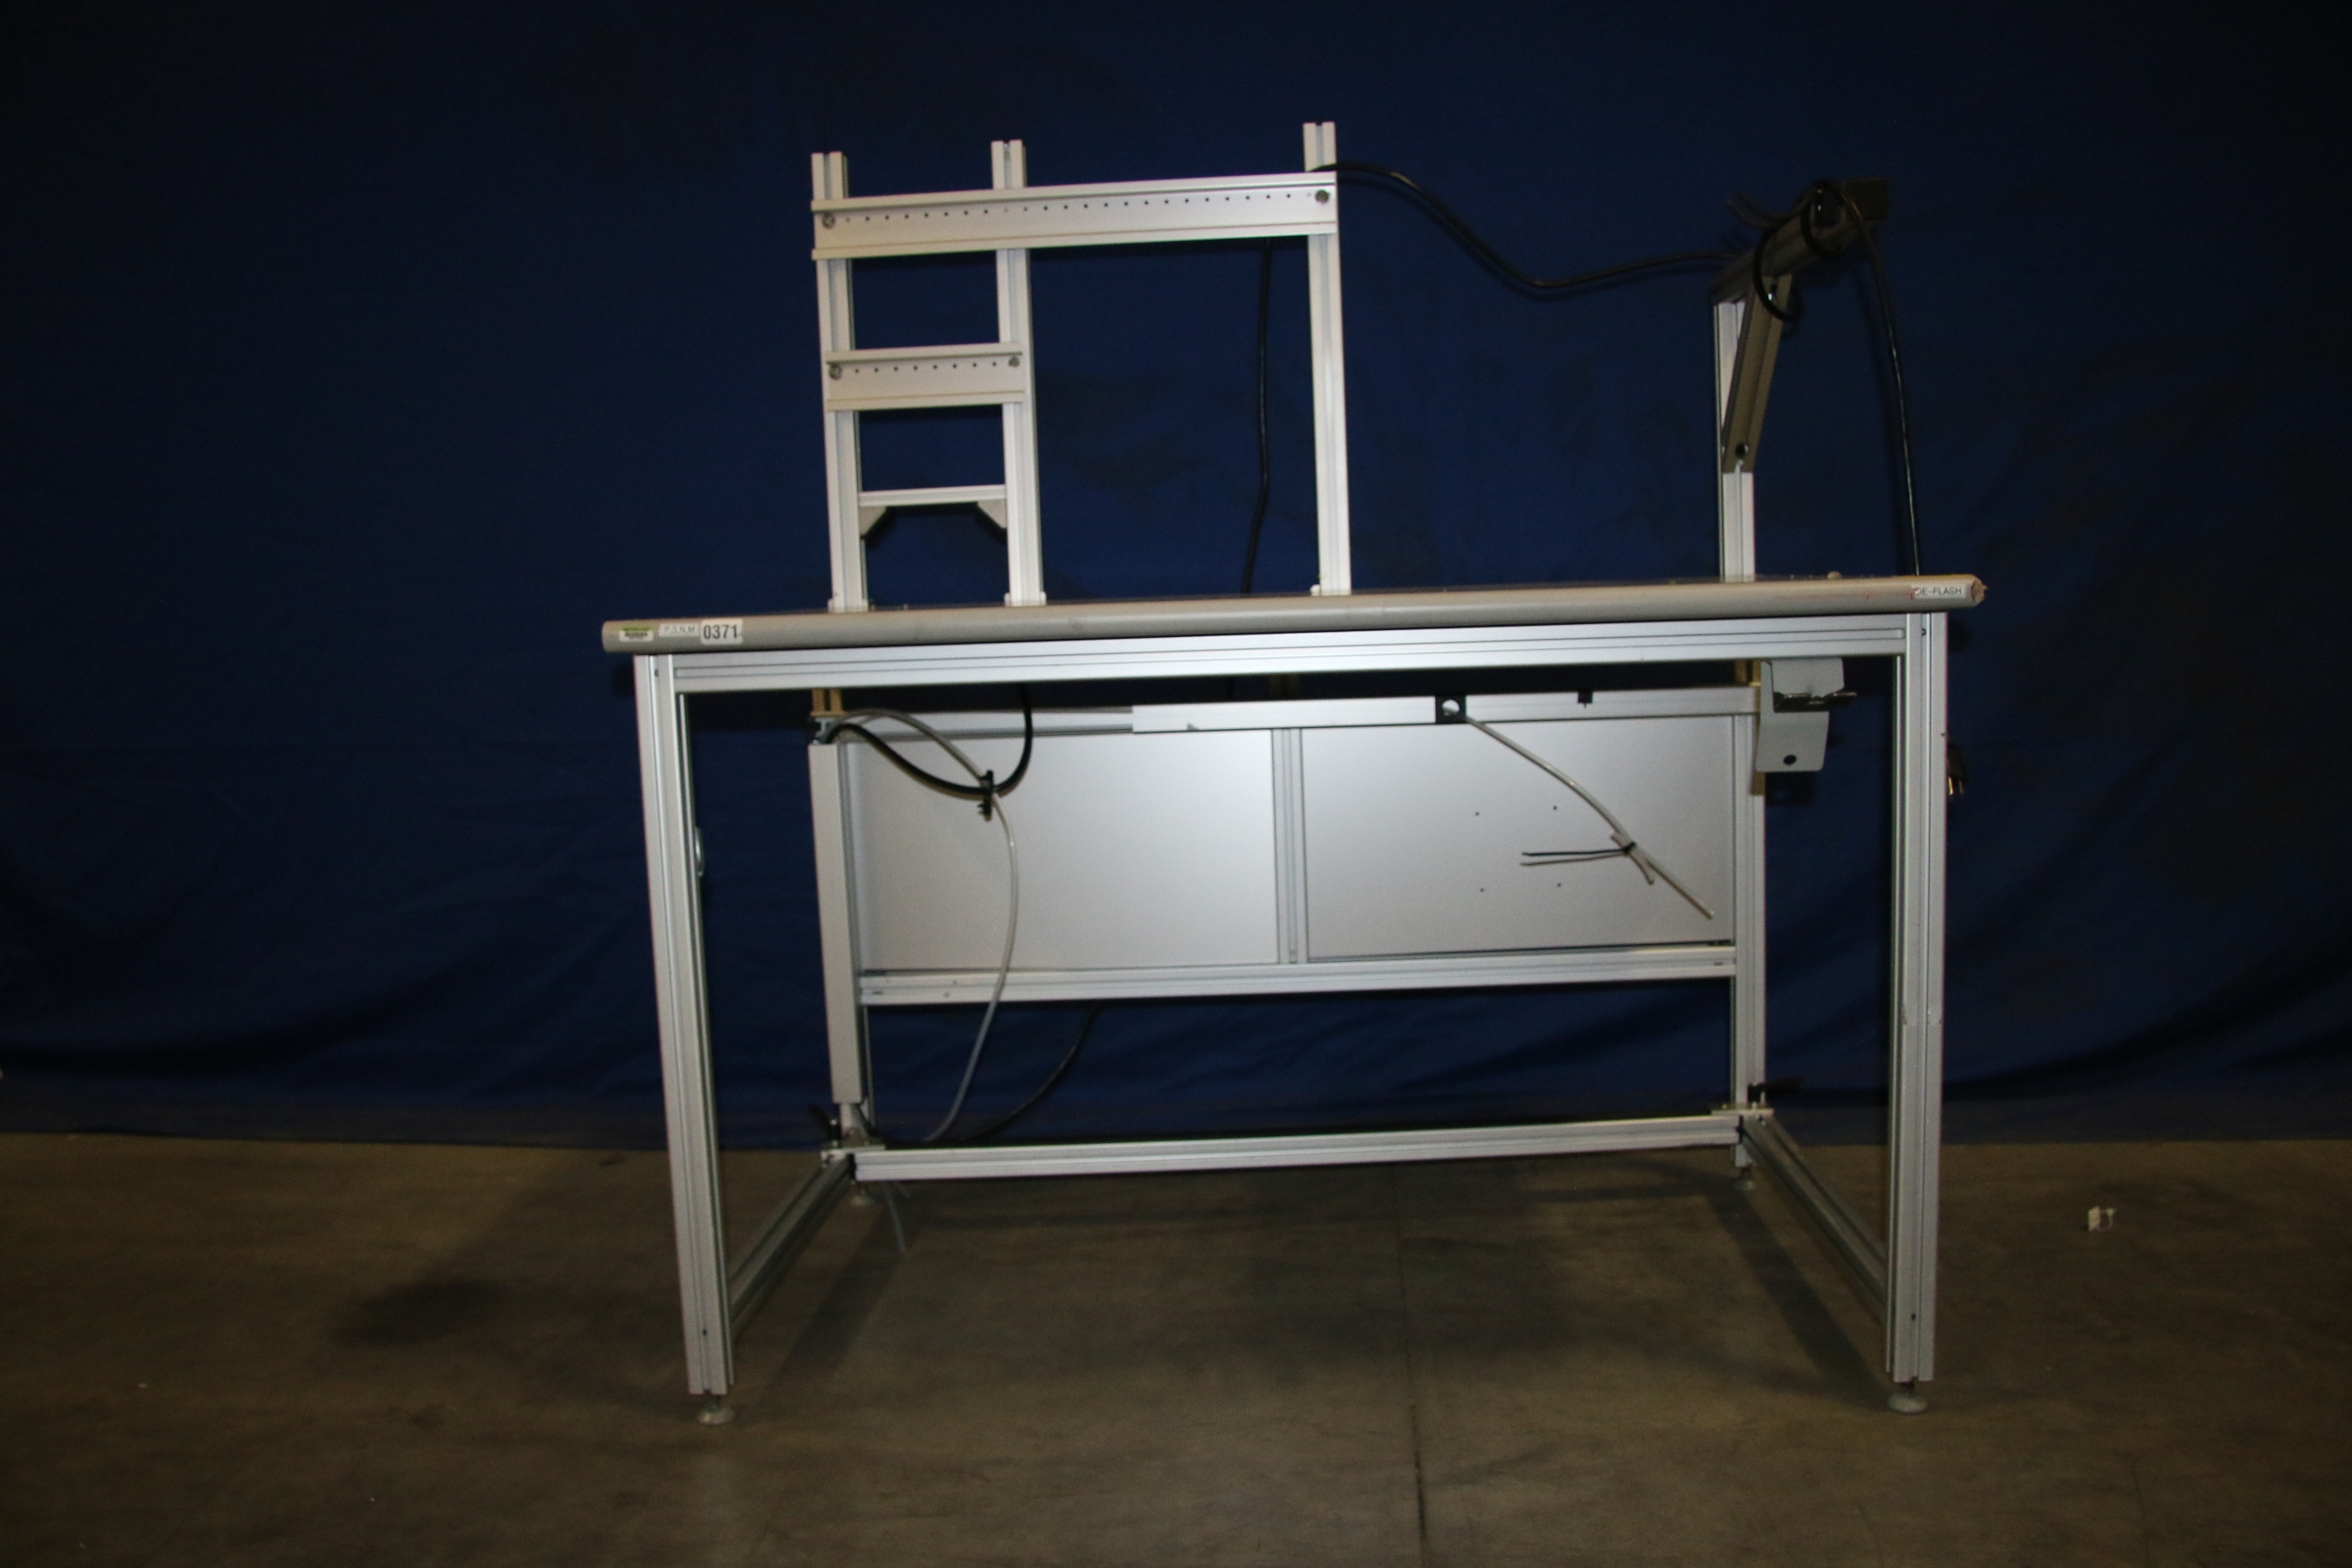 Used 80/20 T-Slotted Aluminum Frame 48″ x 31″ x 32″ Custom Work Bench 17480